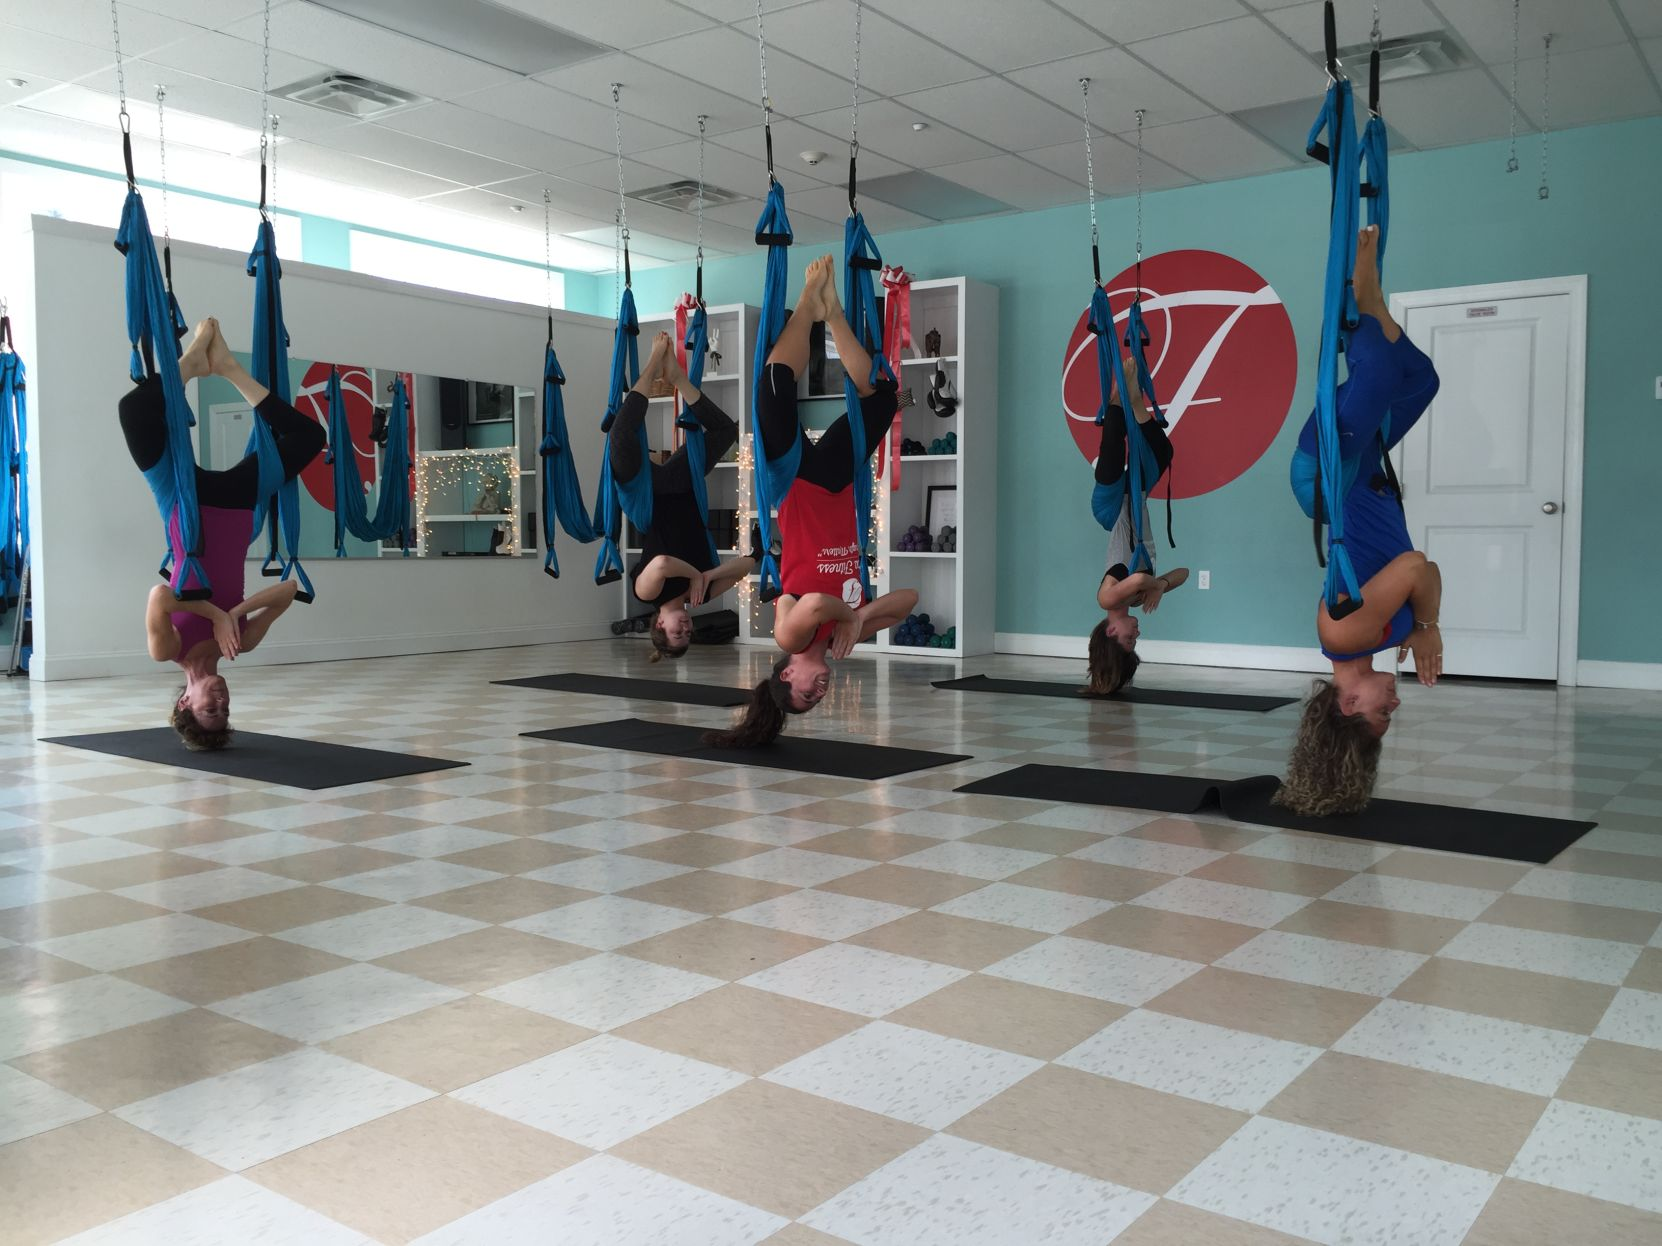 At The Shore reporters tried out the hottest new fitness trends on land, sky and sea Family